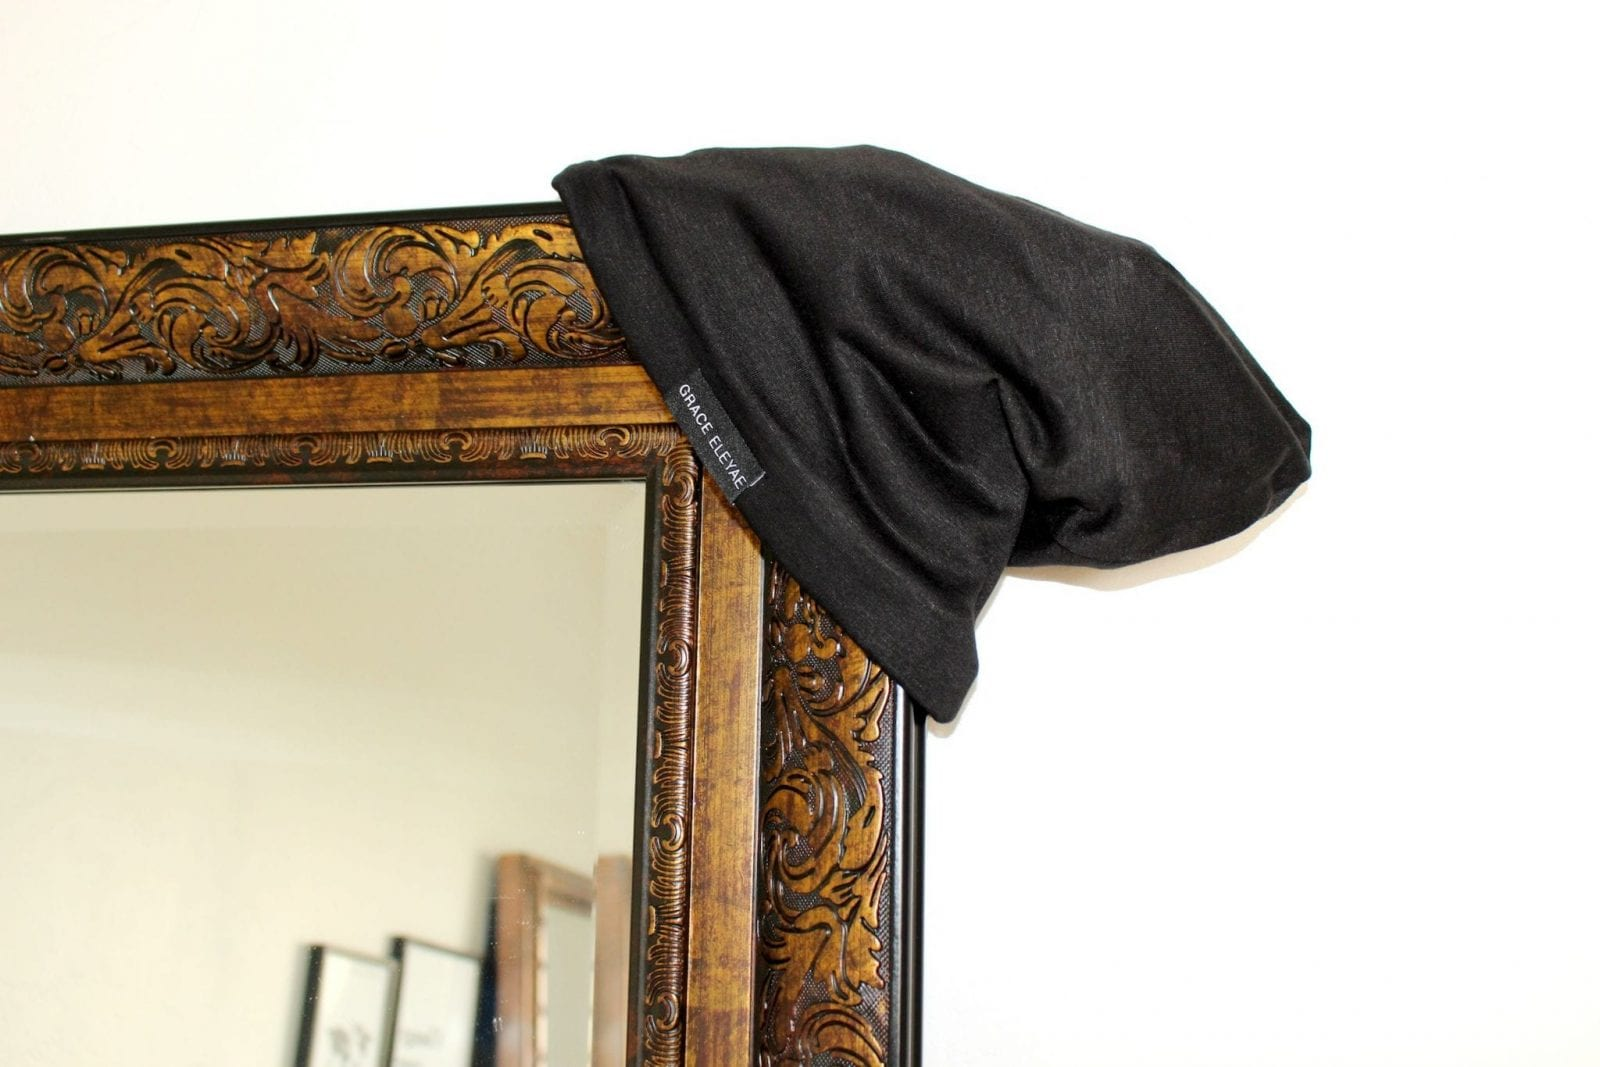 This is a close up of the Grace Eleyae Satin Lined Cap hanging on a mirror.